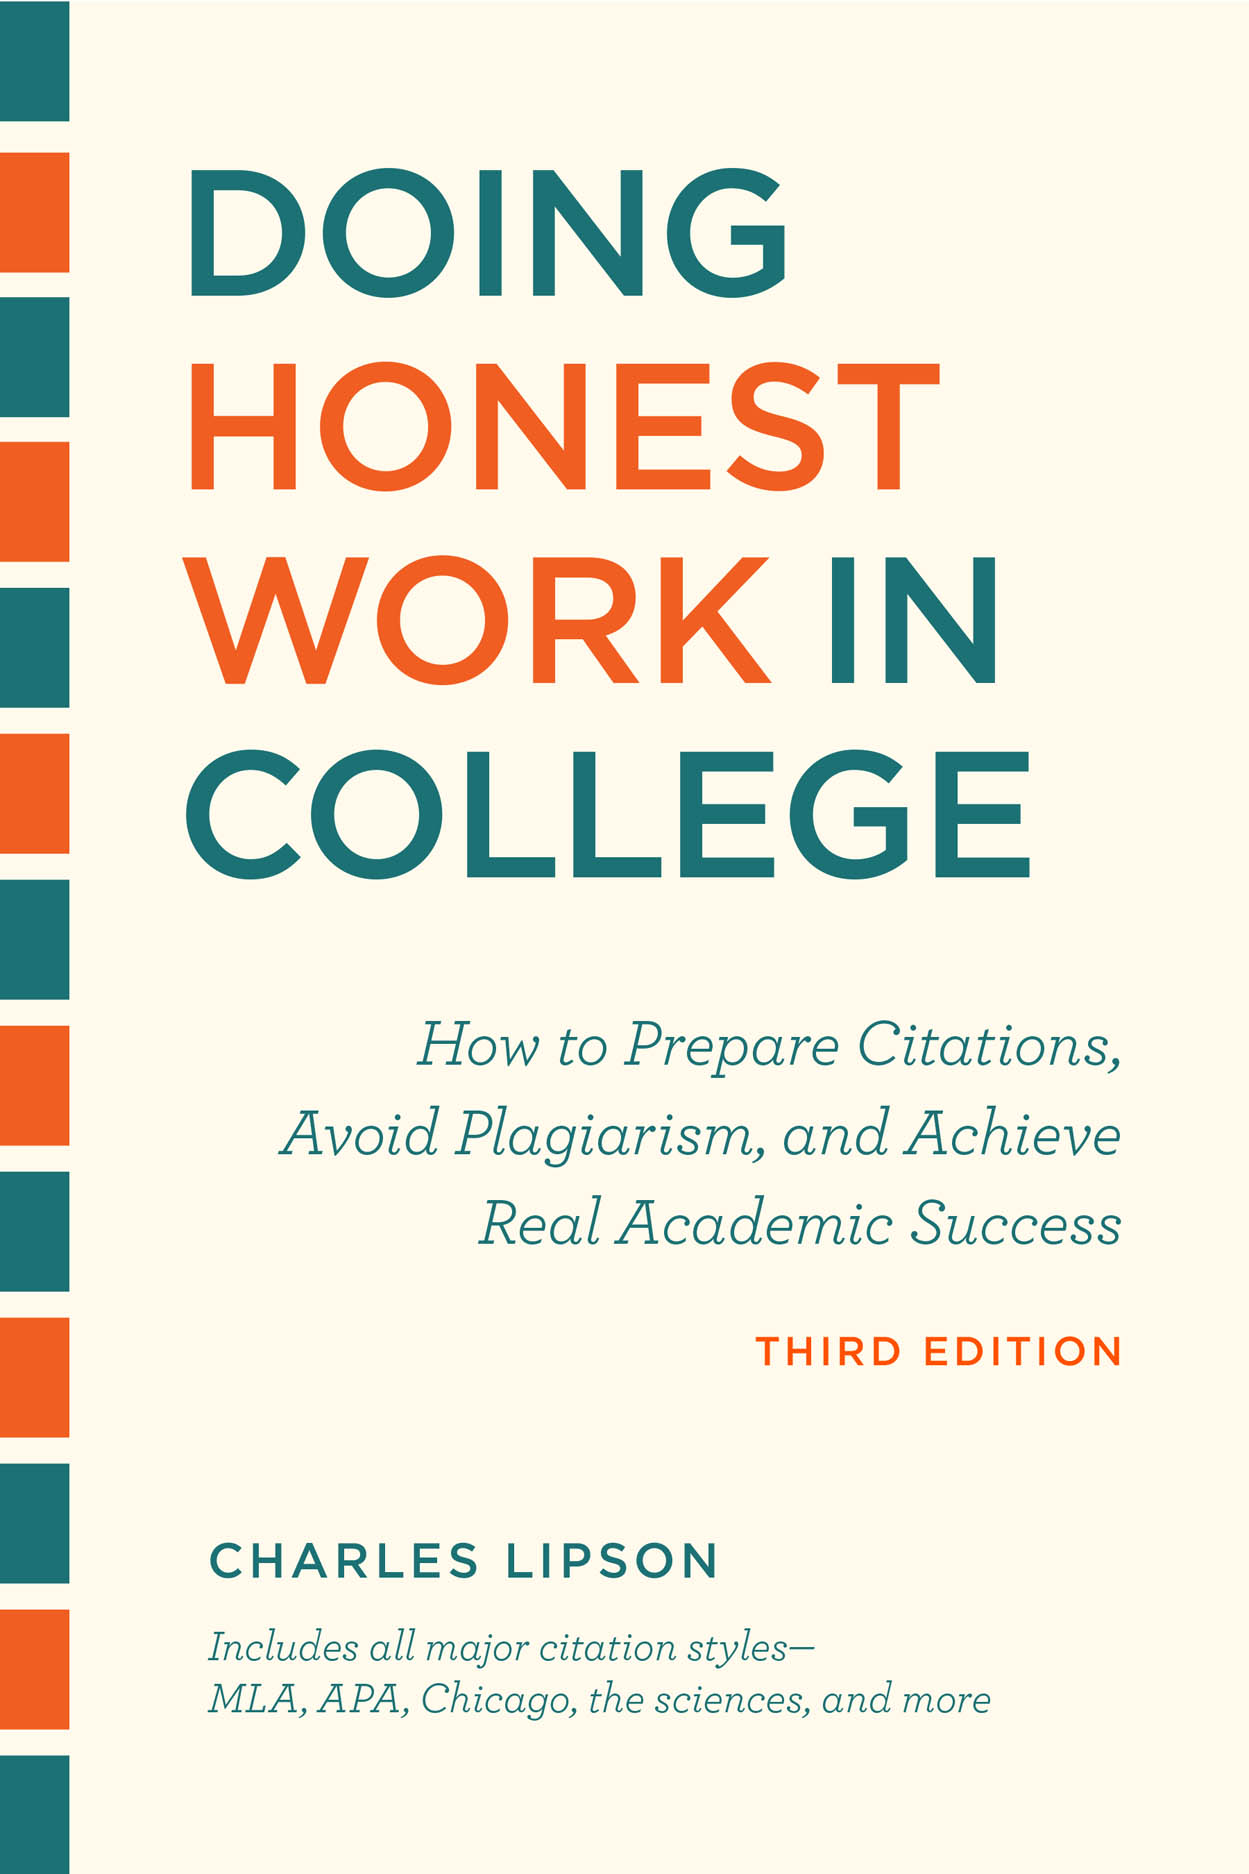 Doing Honest Work in College, Third Edition: How to Prepare Citations, Avoid Plagiarism, and Achieve Real Academic Success